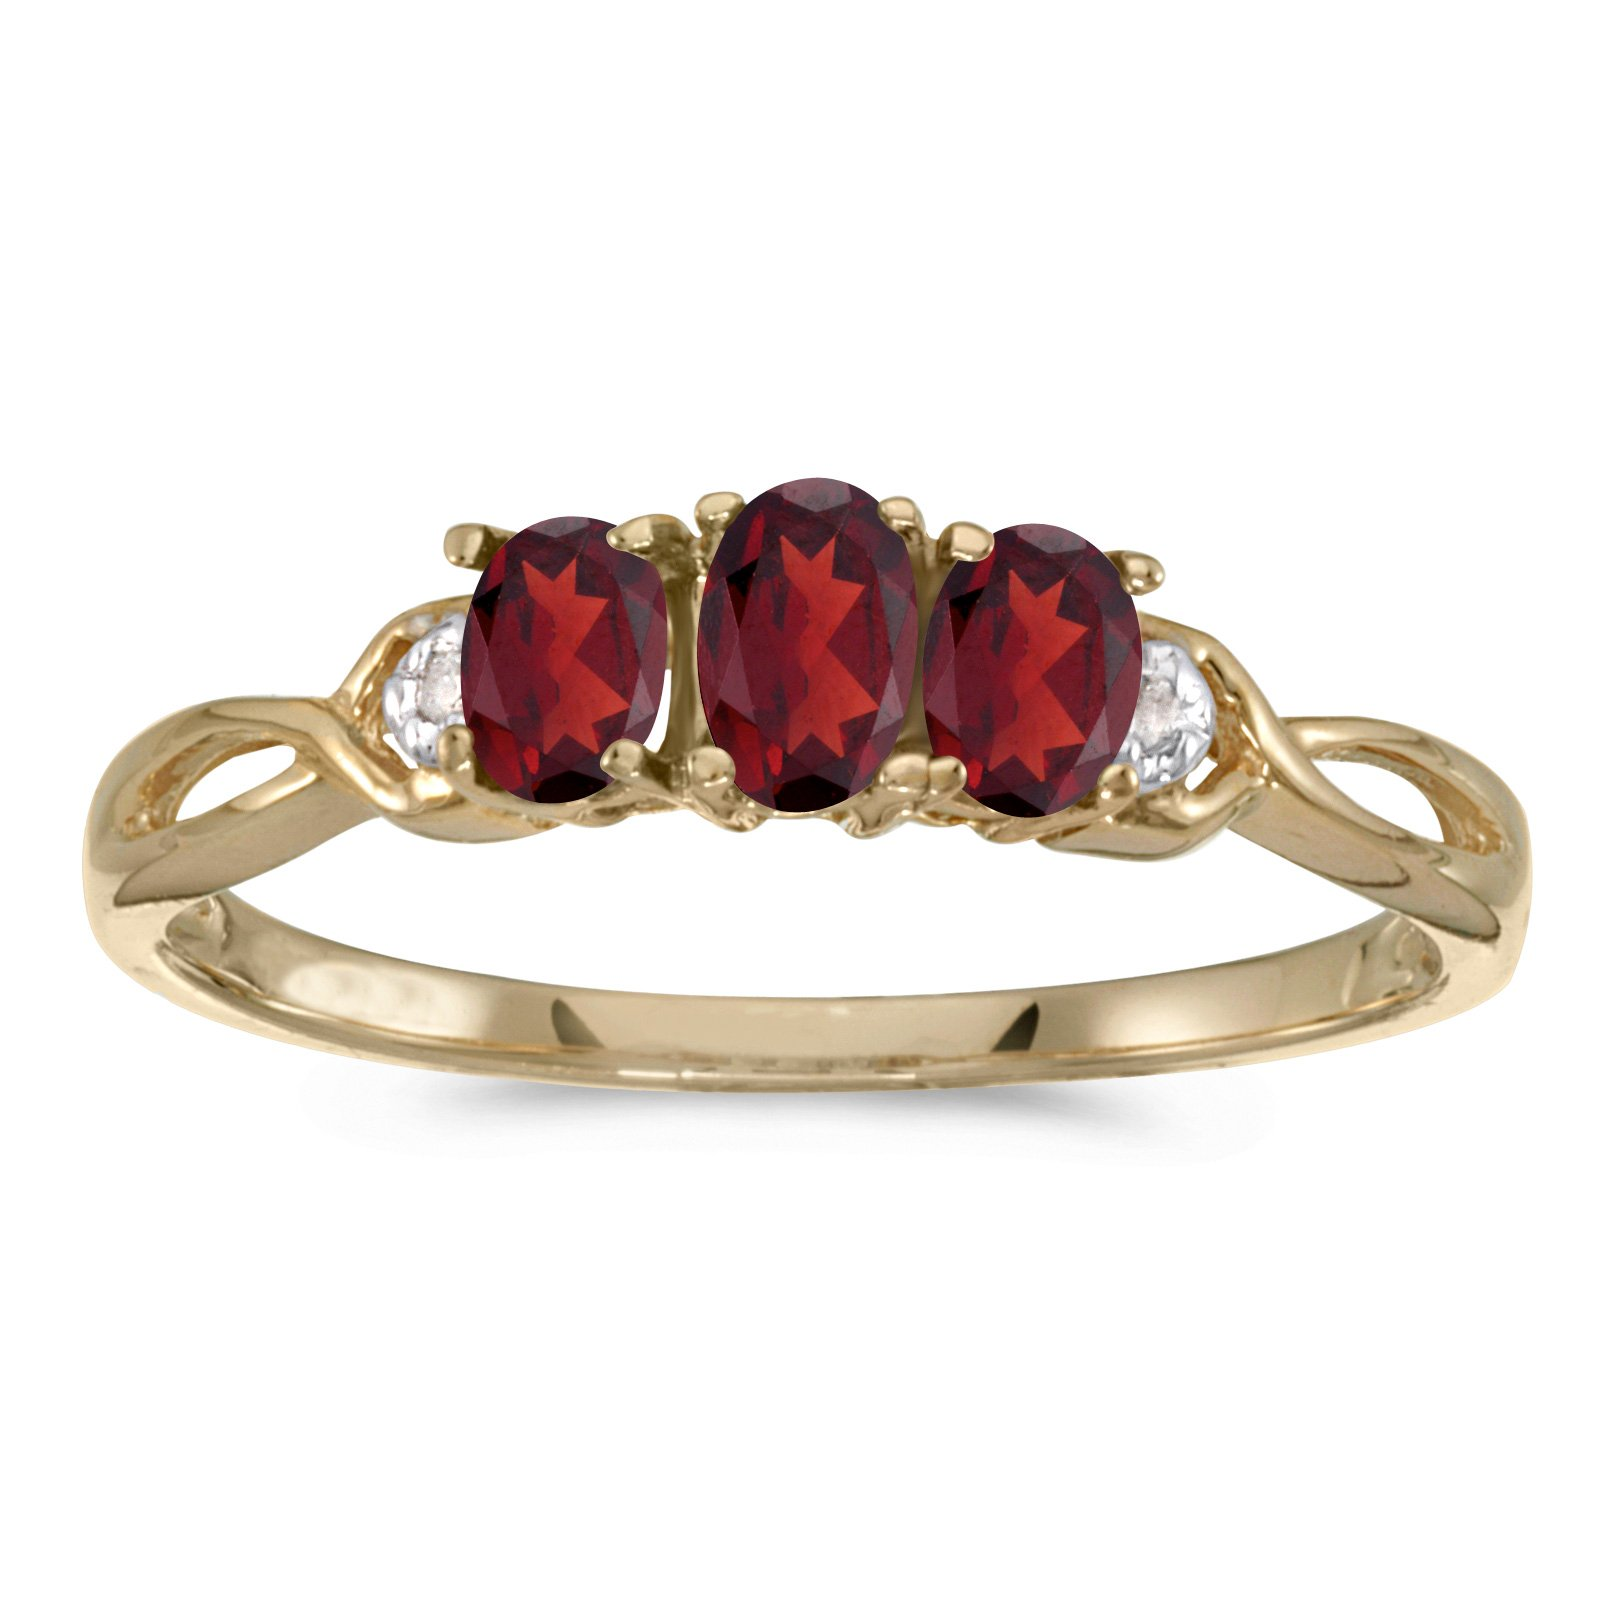 0.61 Carat (ctw) 10k Yellow Gold Oval Red Garnet and Diamond 3 Three Stone Infinity Promise Engagement Fashion Ring (5 x 3 MM) - Size 5